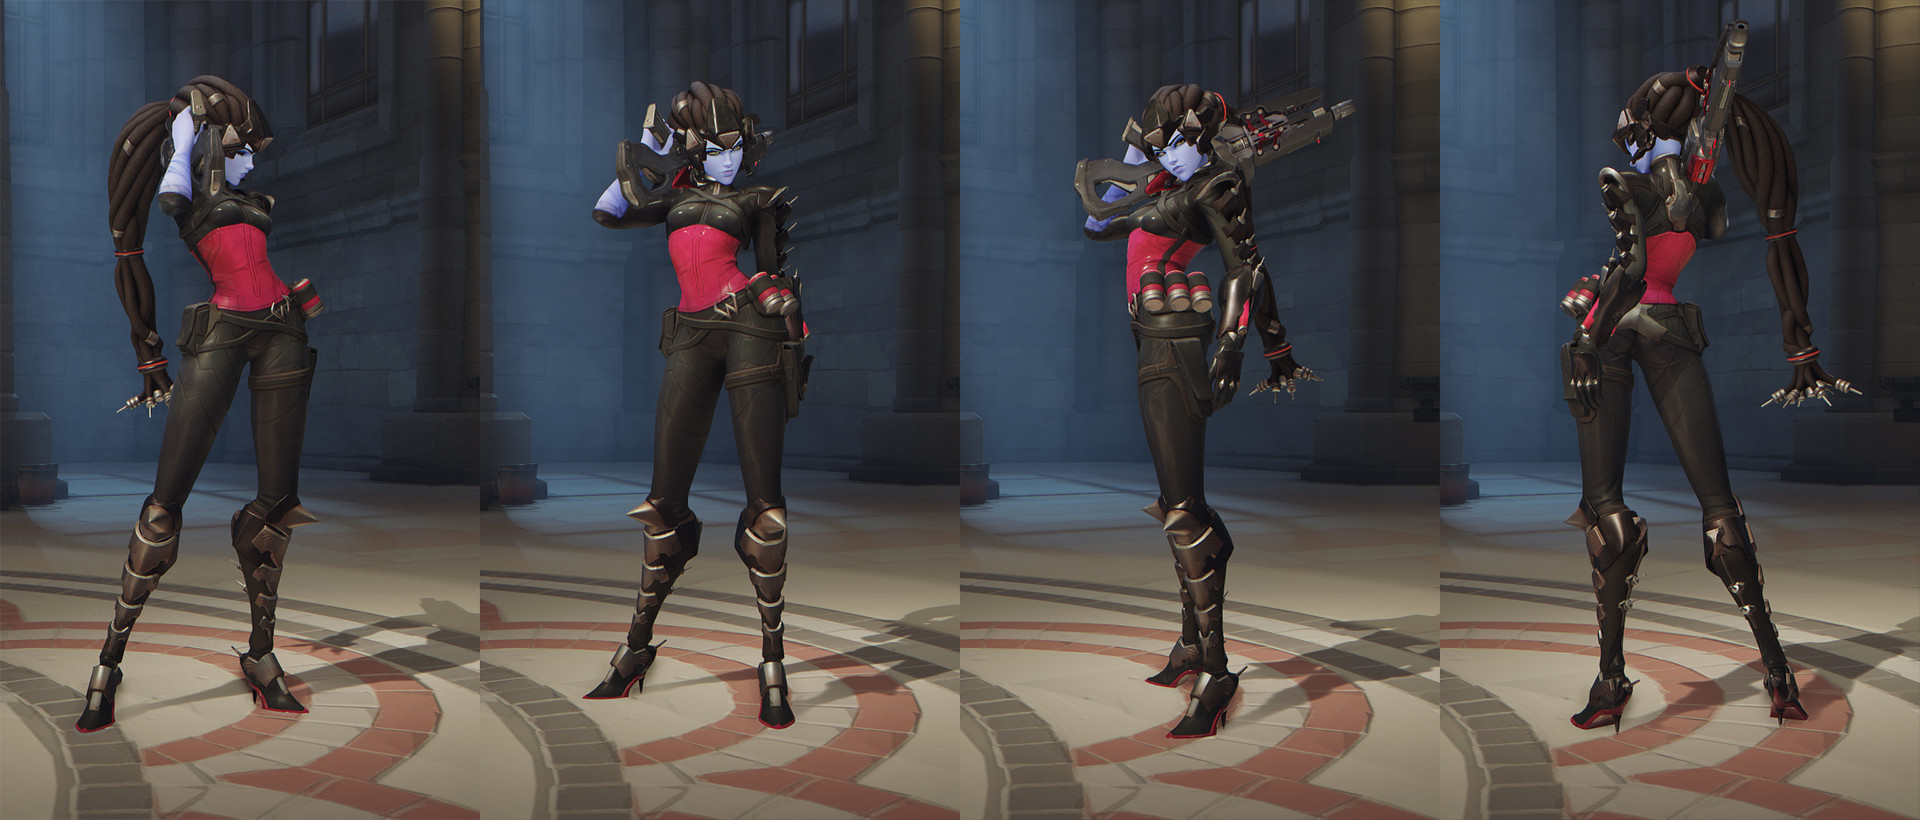 "WIDOWMAKER"" SKIN FOR OVERWATCH ORIGINS EDITION"